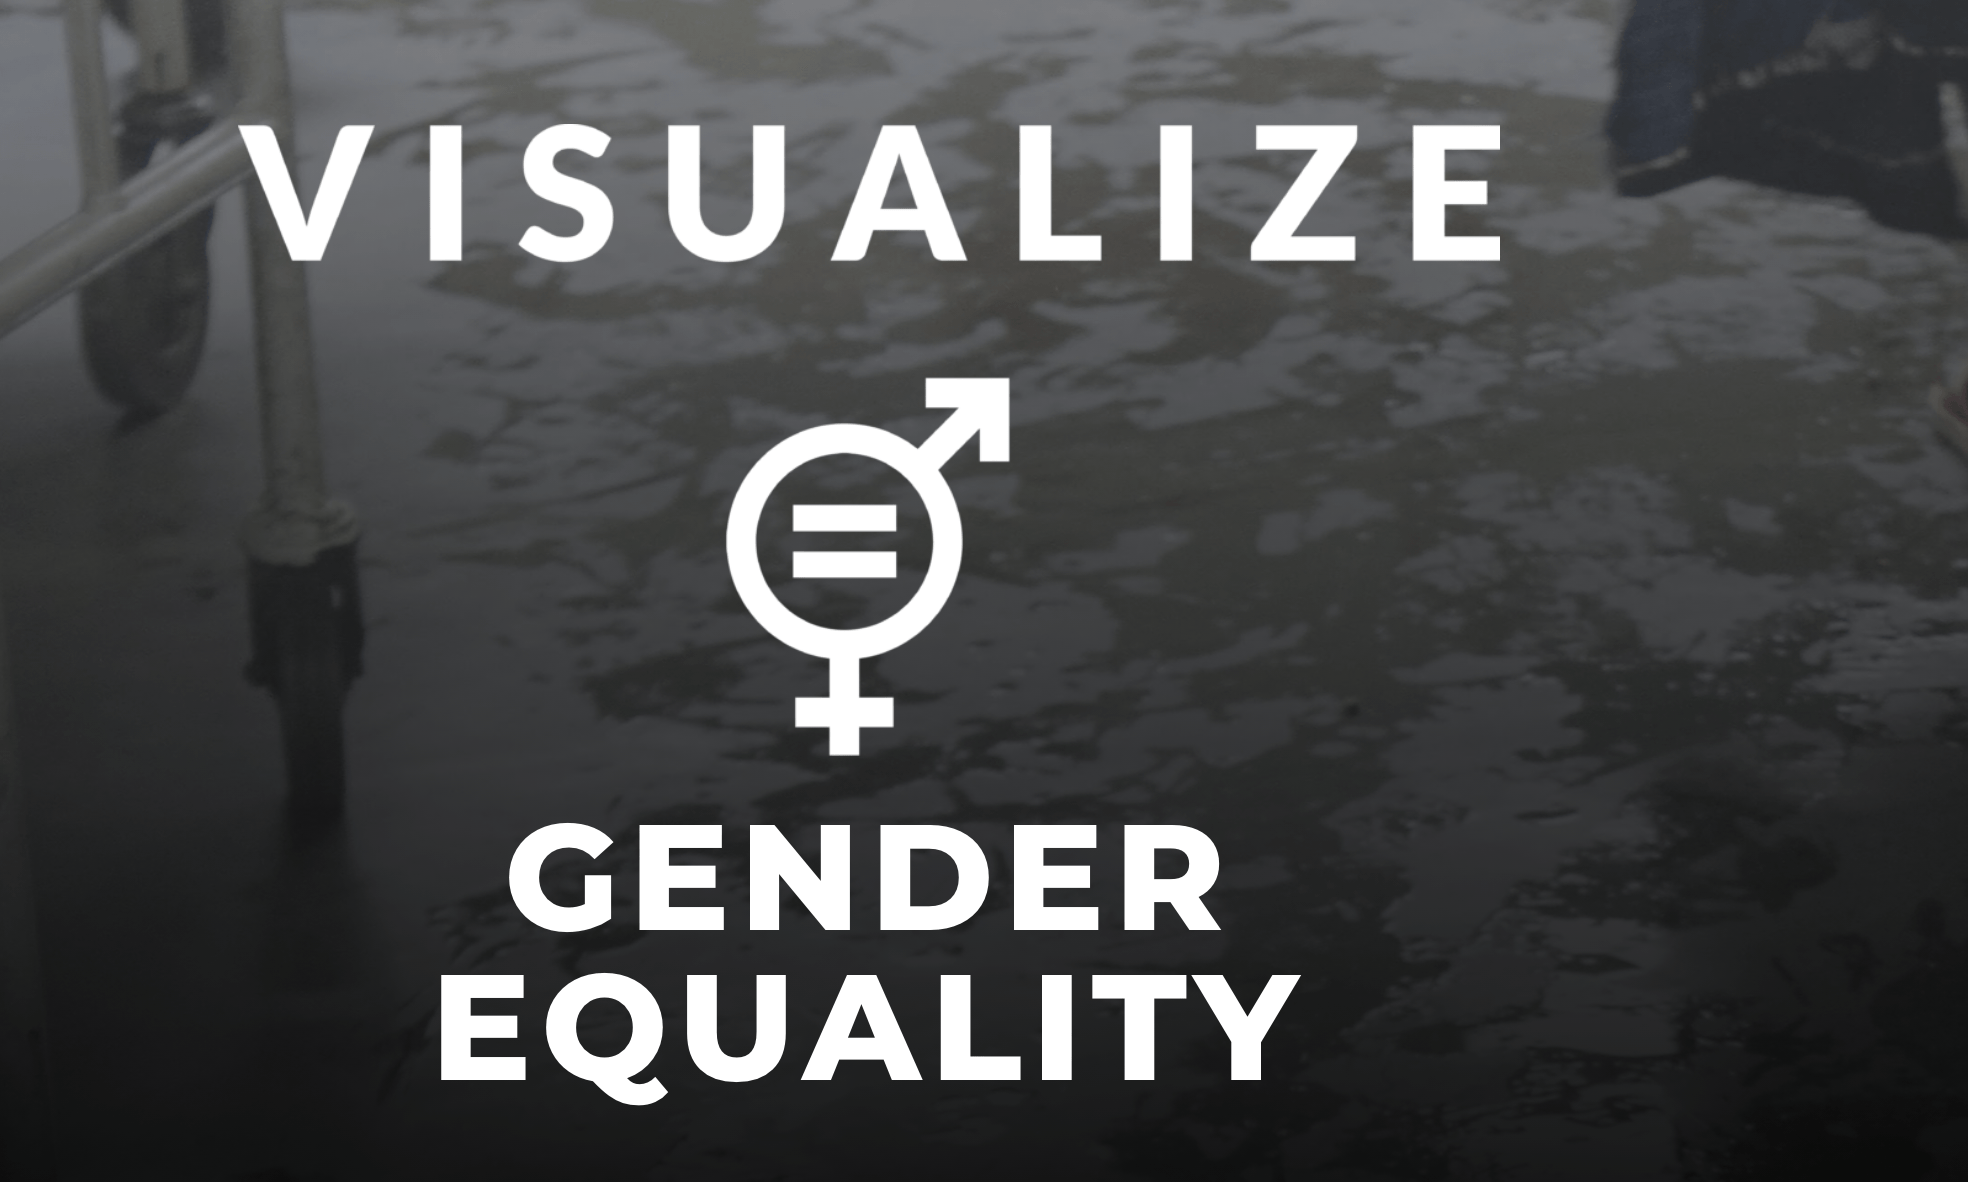 Navigate to Harnessing the power of data viz to highlight gender inequality